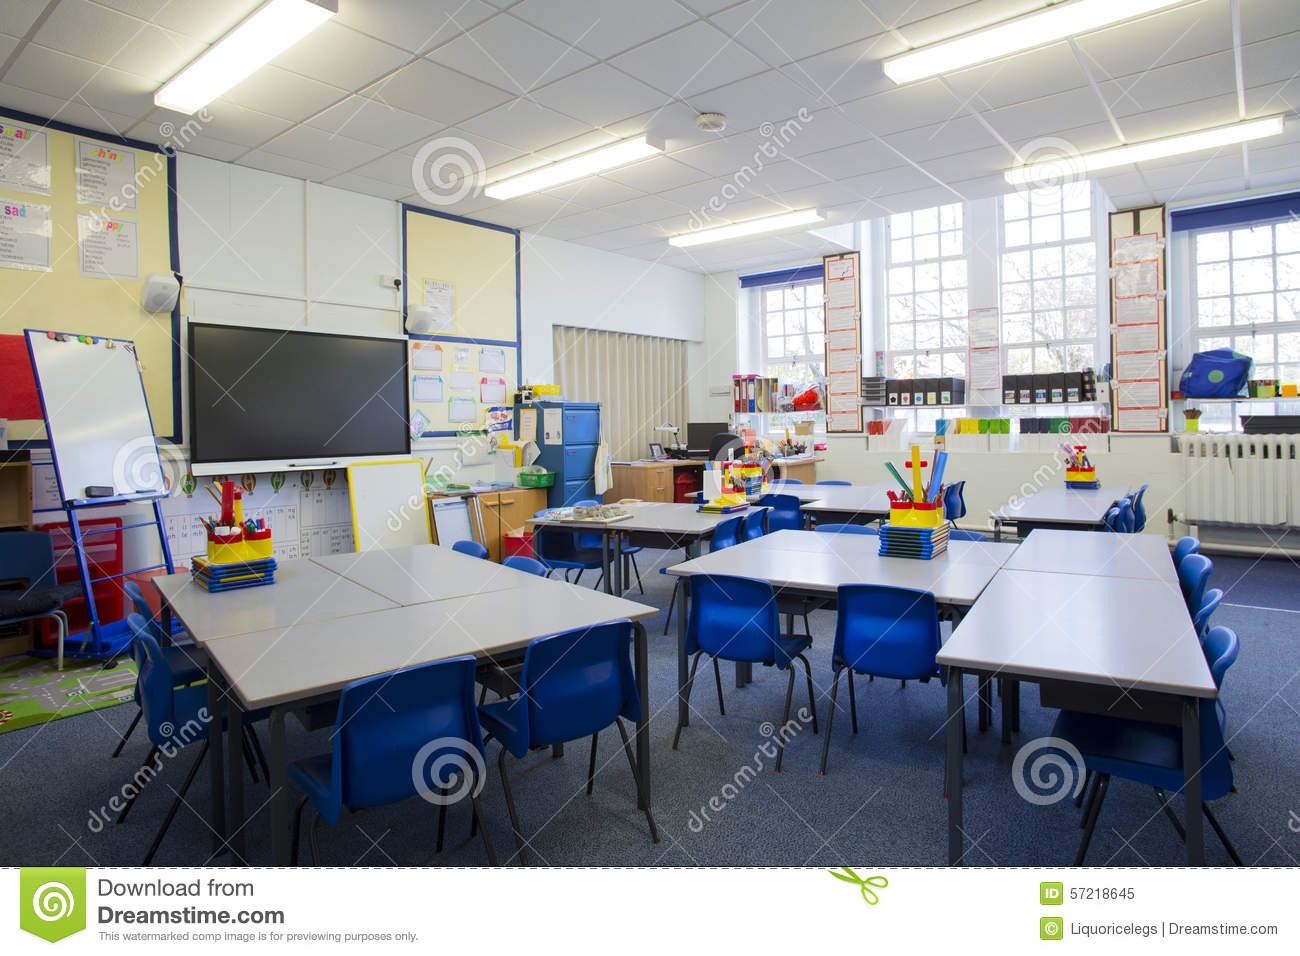 Classroom Ideas Uk : Salle de classe vide photo stock image